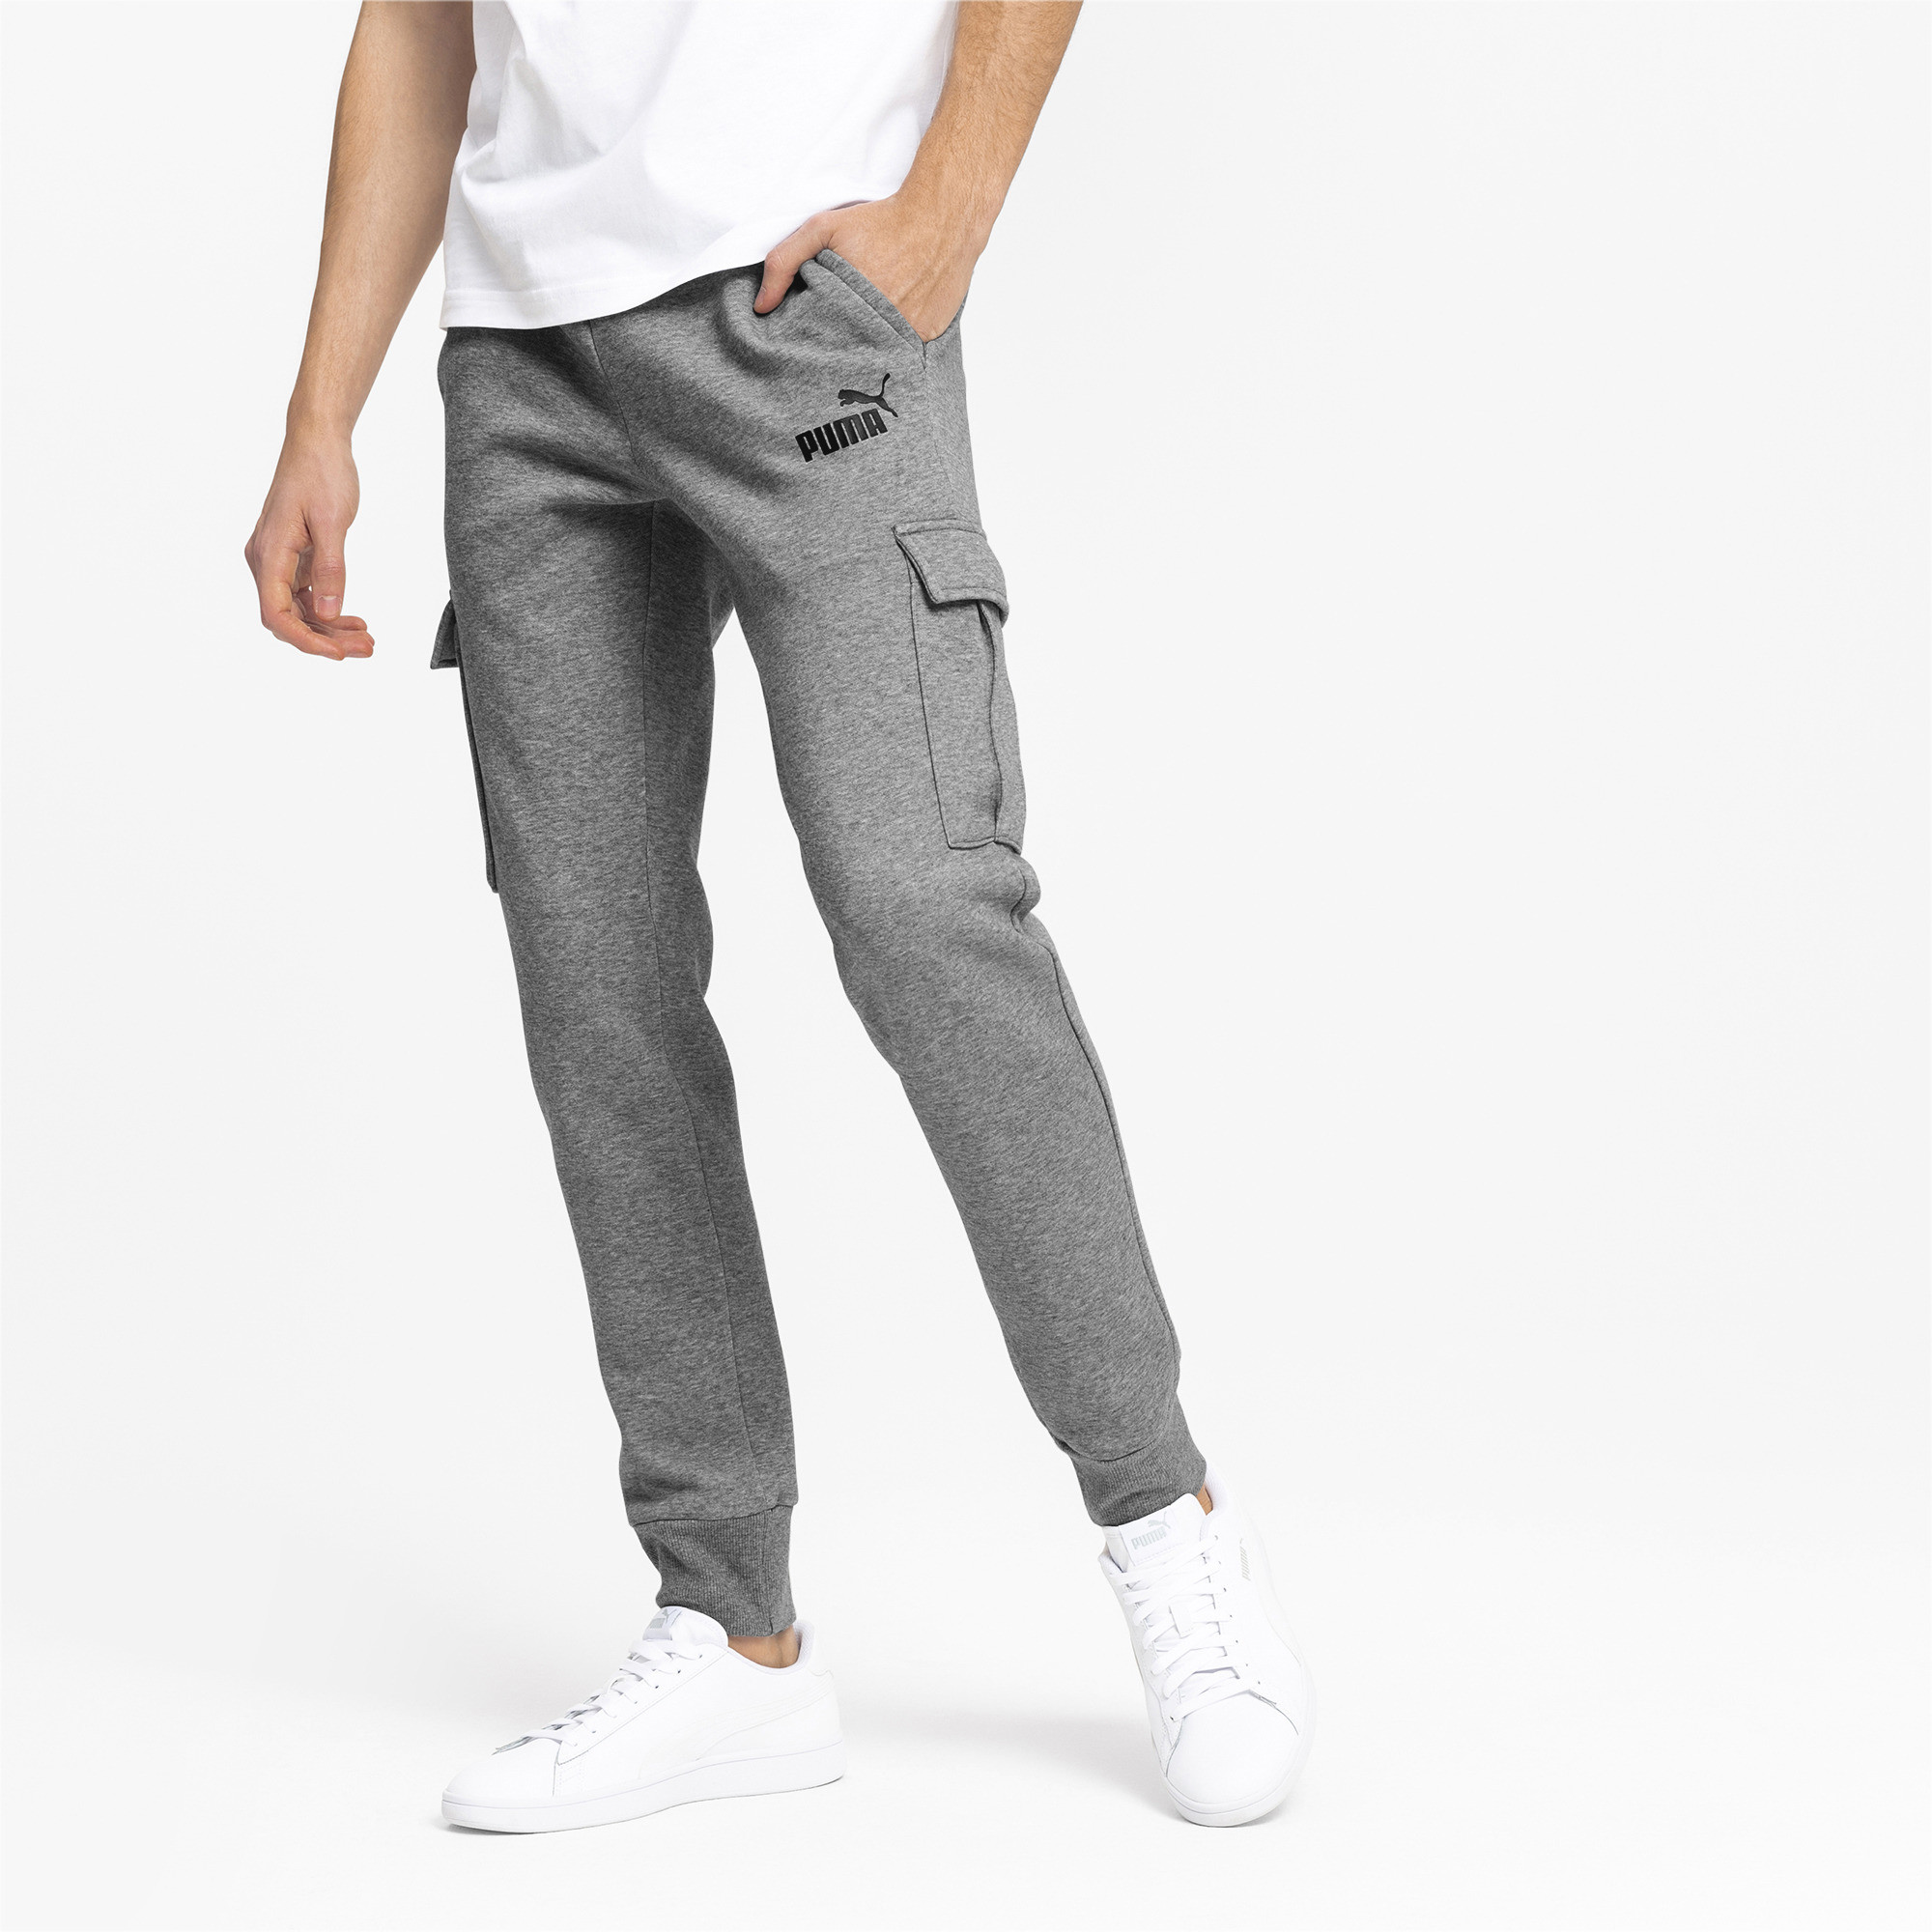 PUMA-Essentials-Men-039-s-Pocket-Pants-Men-Knitted-Pants-Basics thumbnail 4